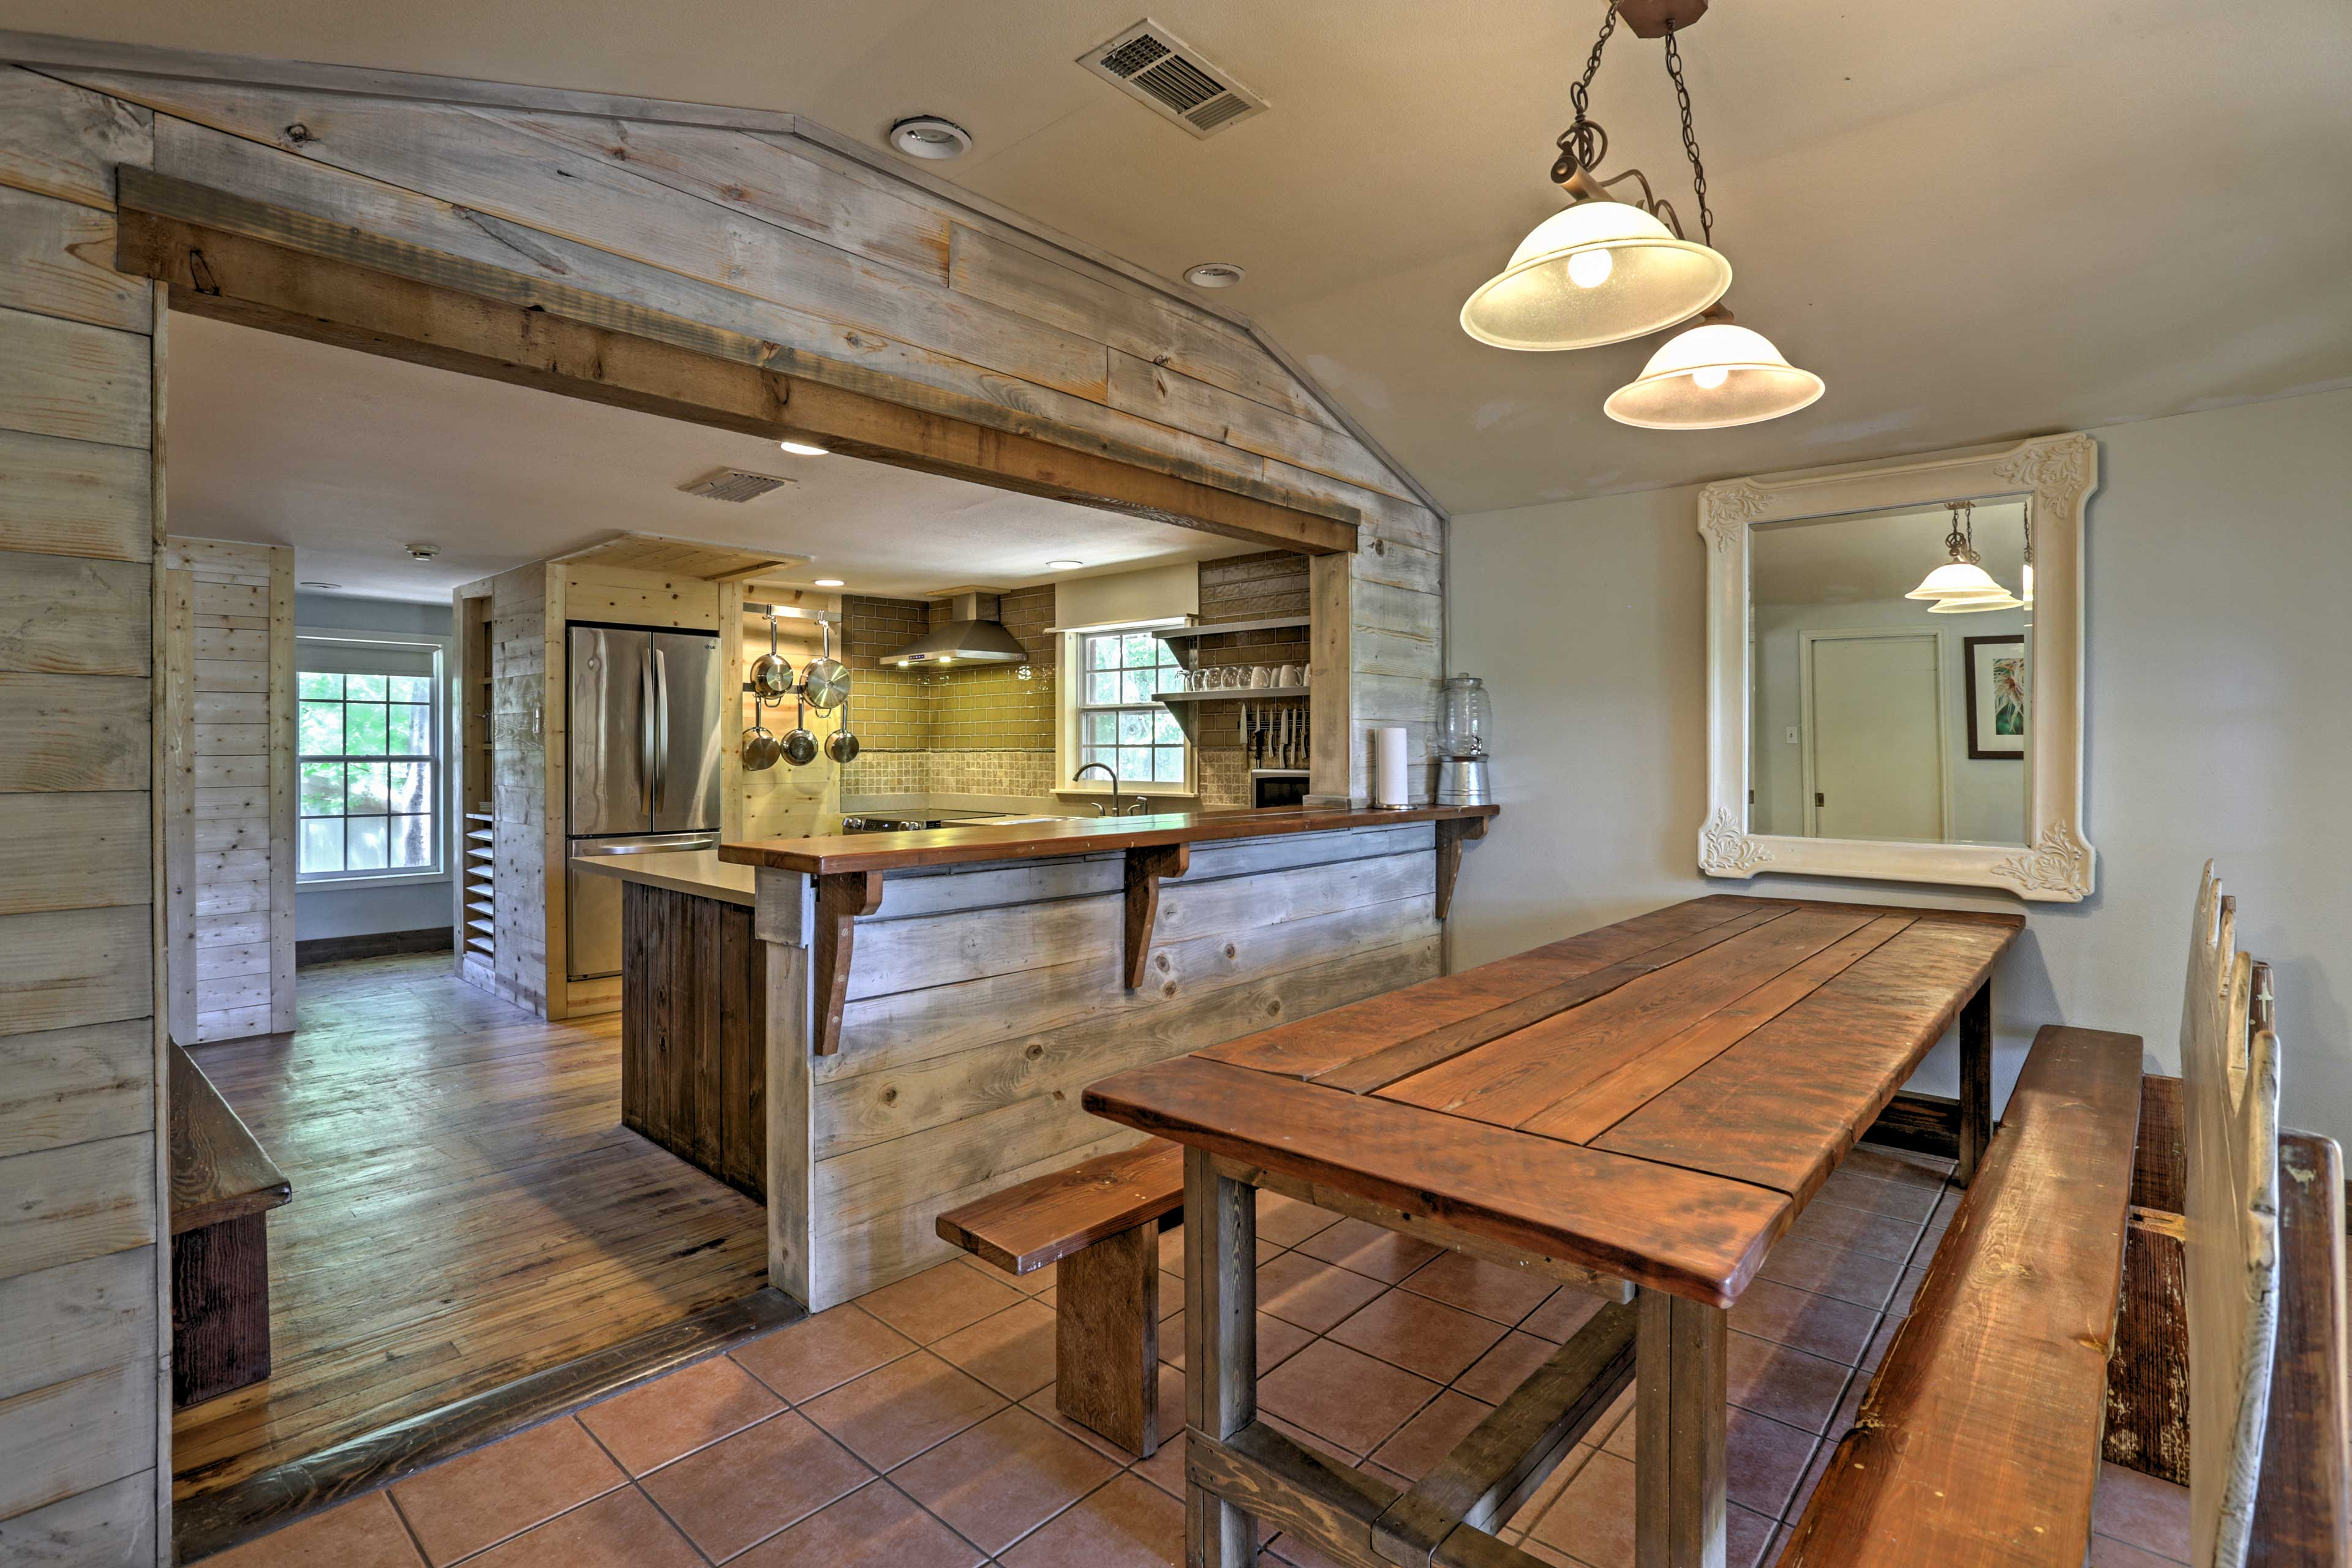 Kitchen & Dining Area | 2 Dining Tables